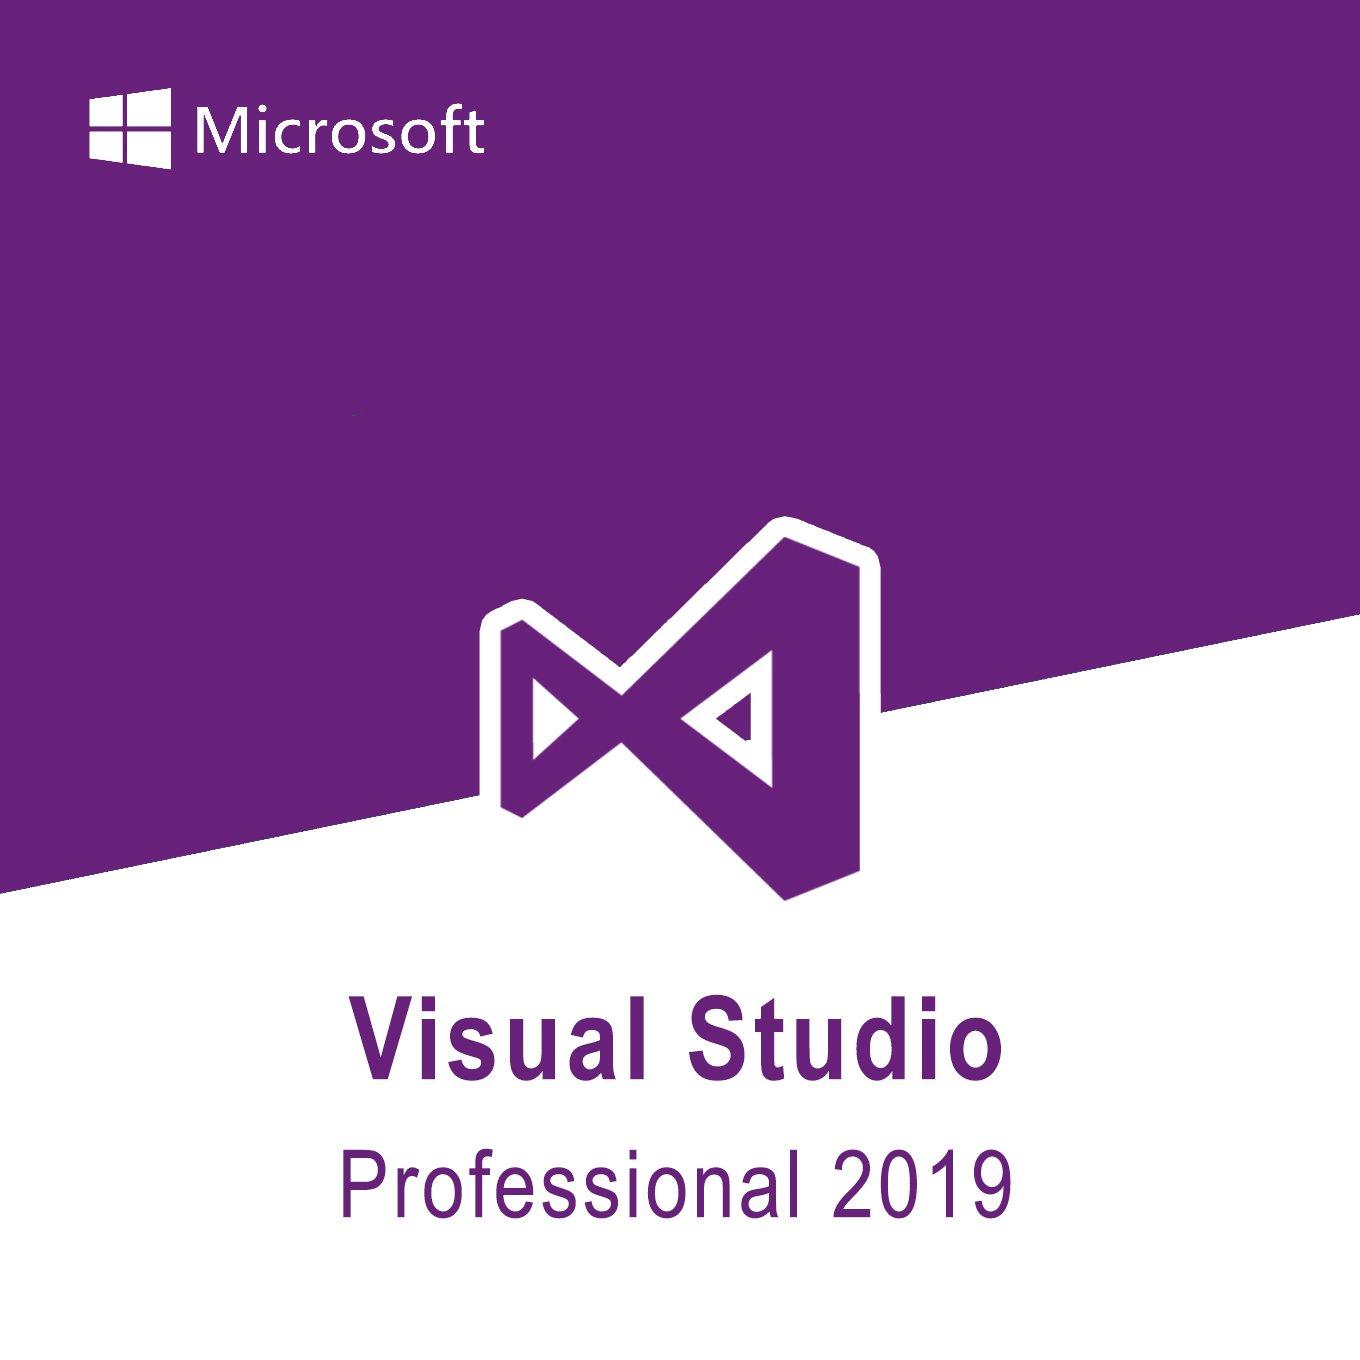 Microsoft Visual Studio Professional 2019